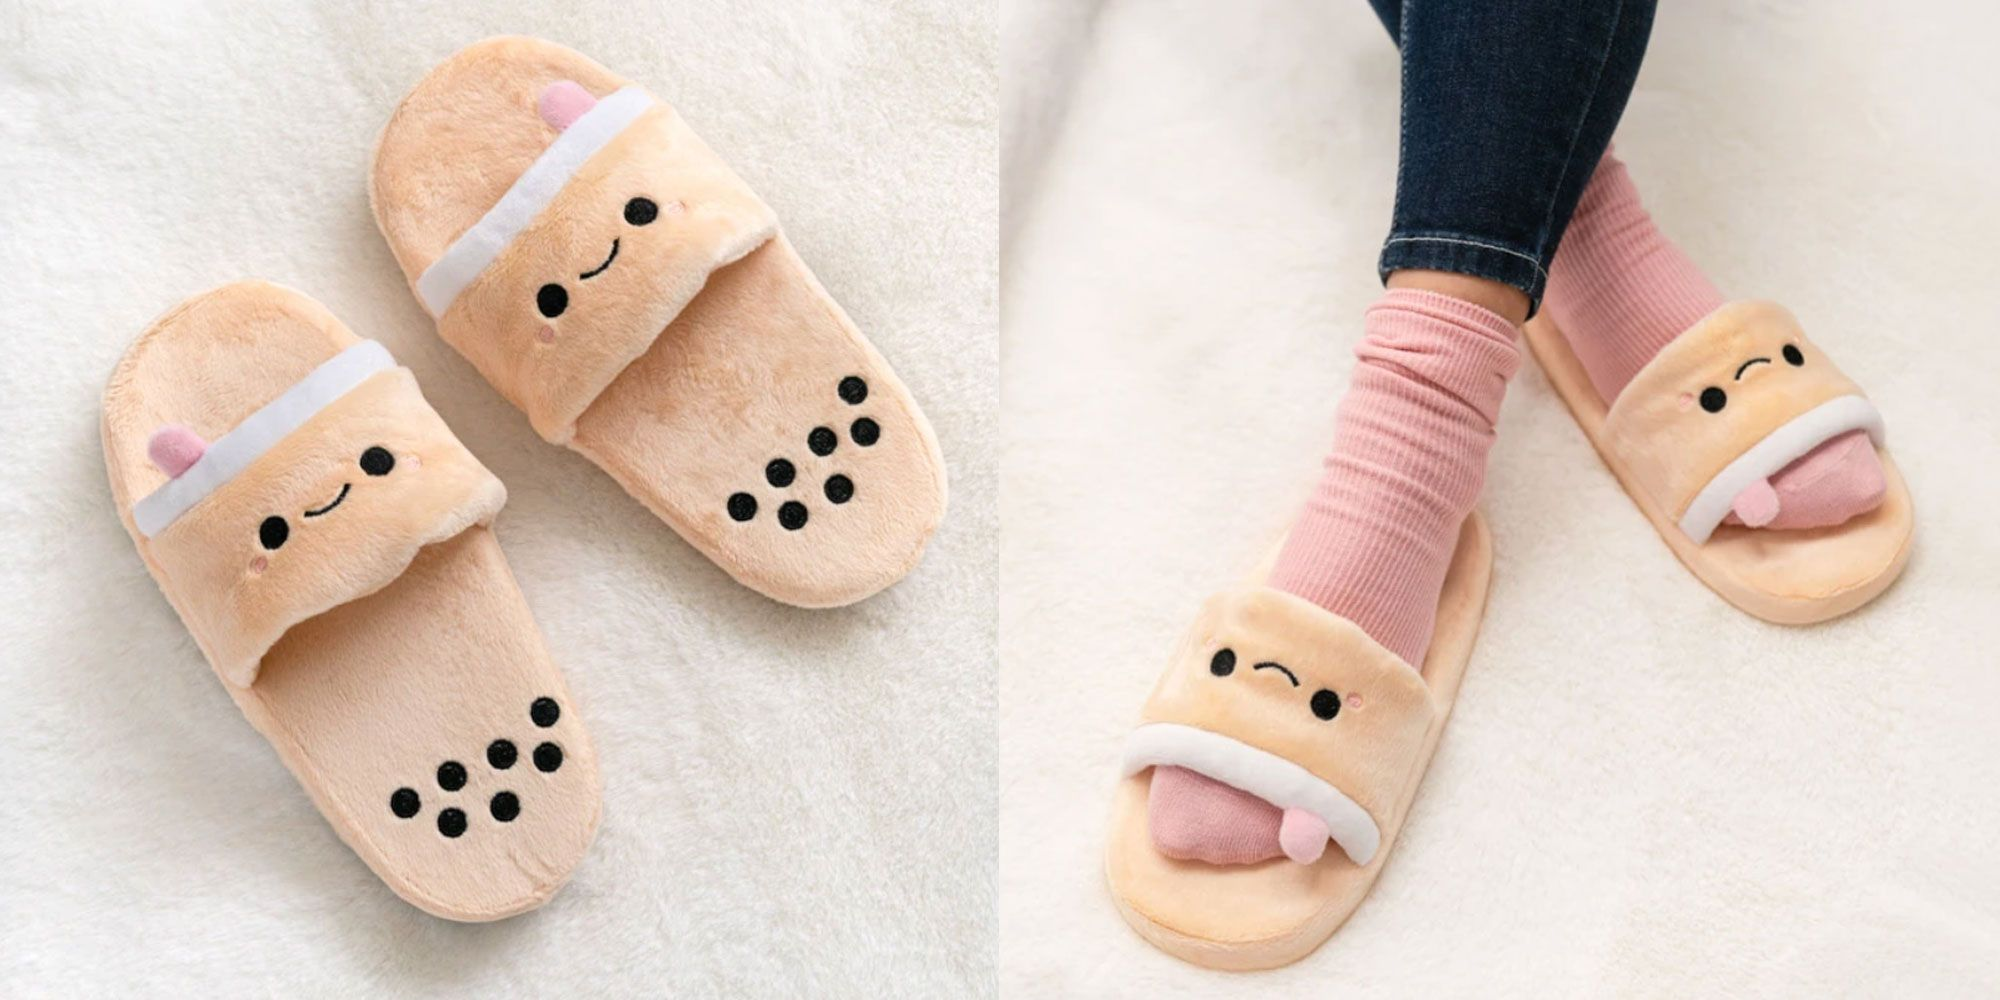 These Slippers Look Just Like A Cup Of Bubble Tea